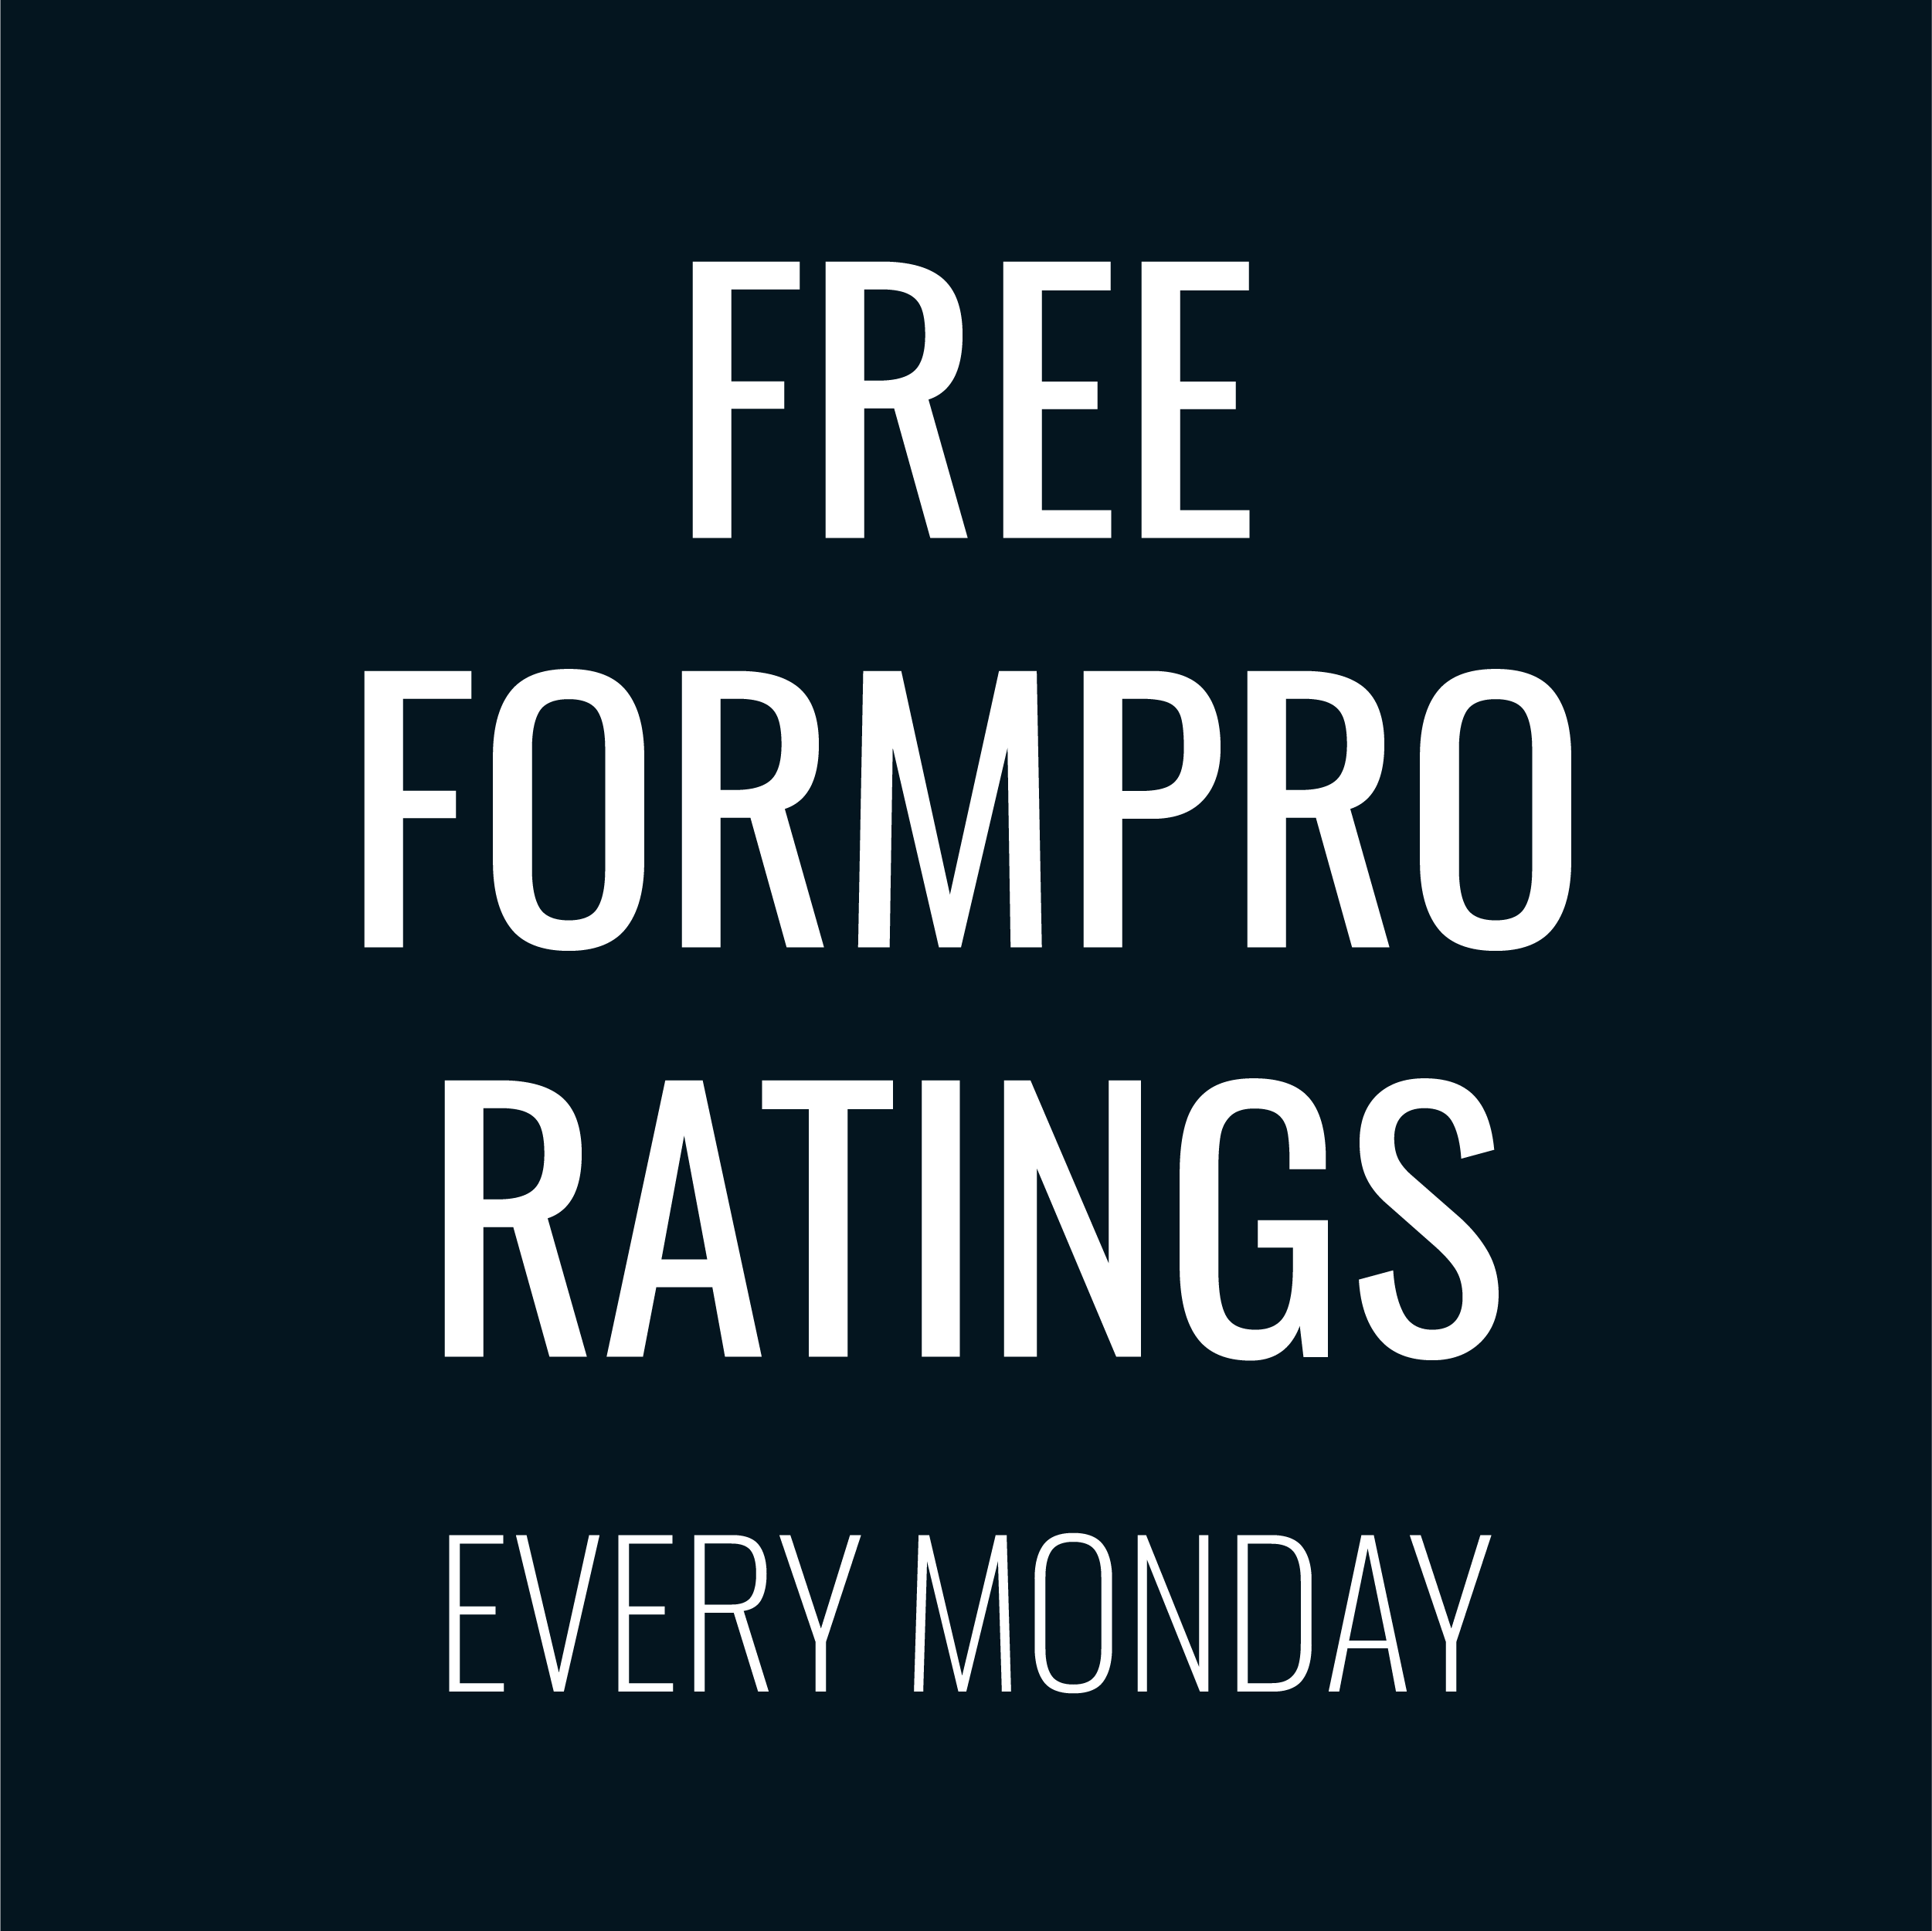 Free Greyhound Ratings 2 December 2019